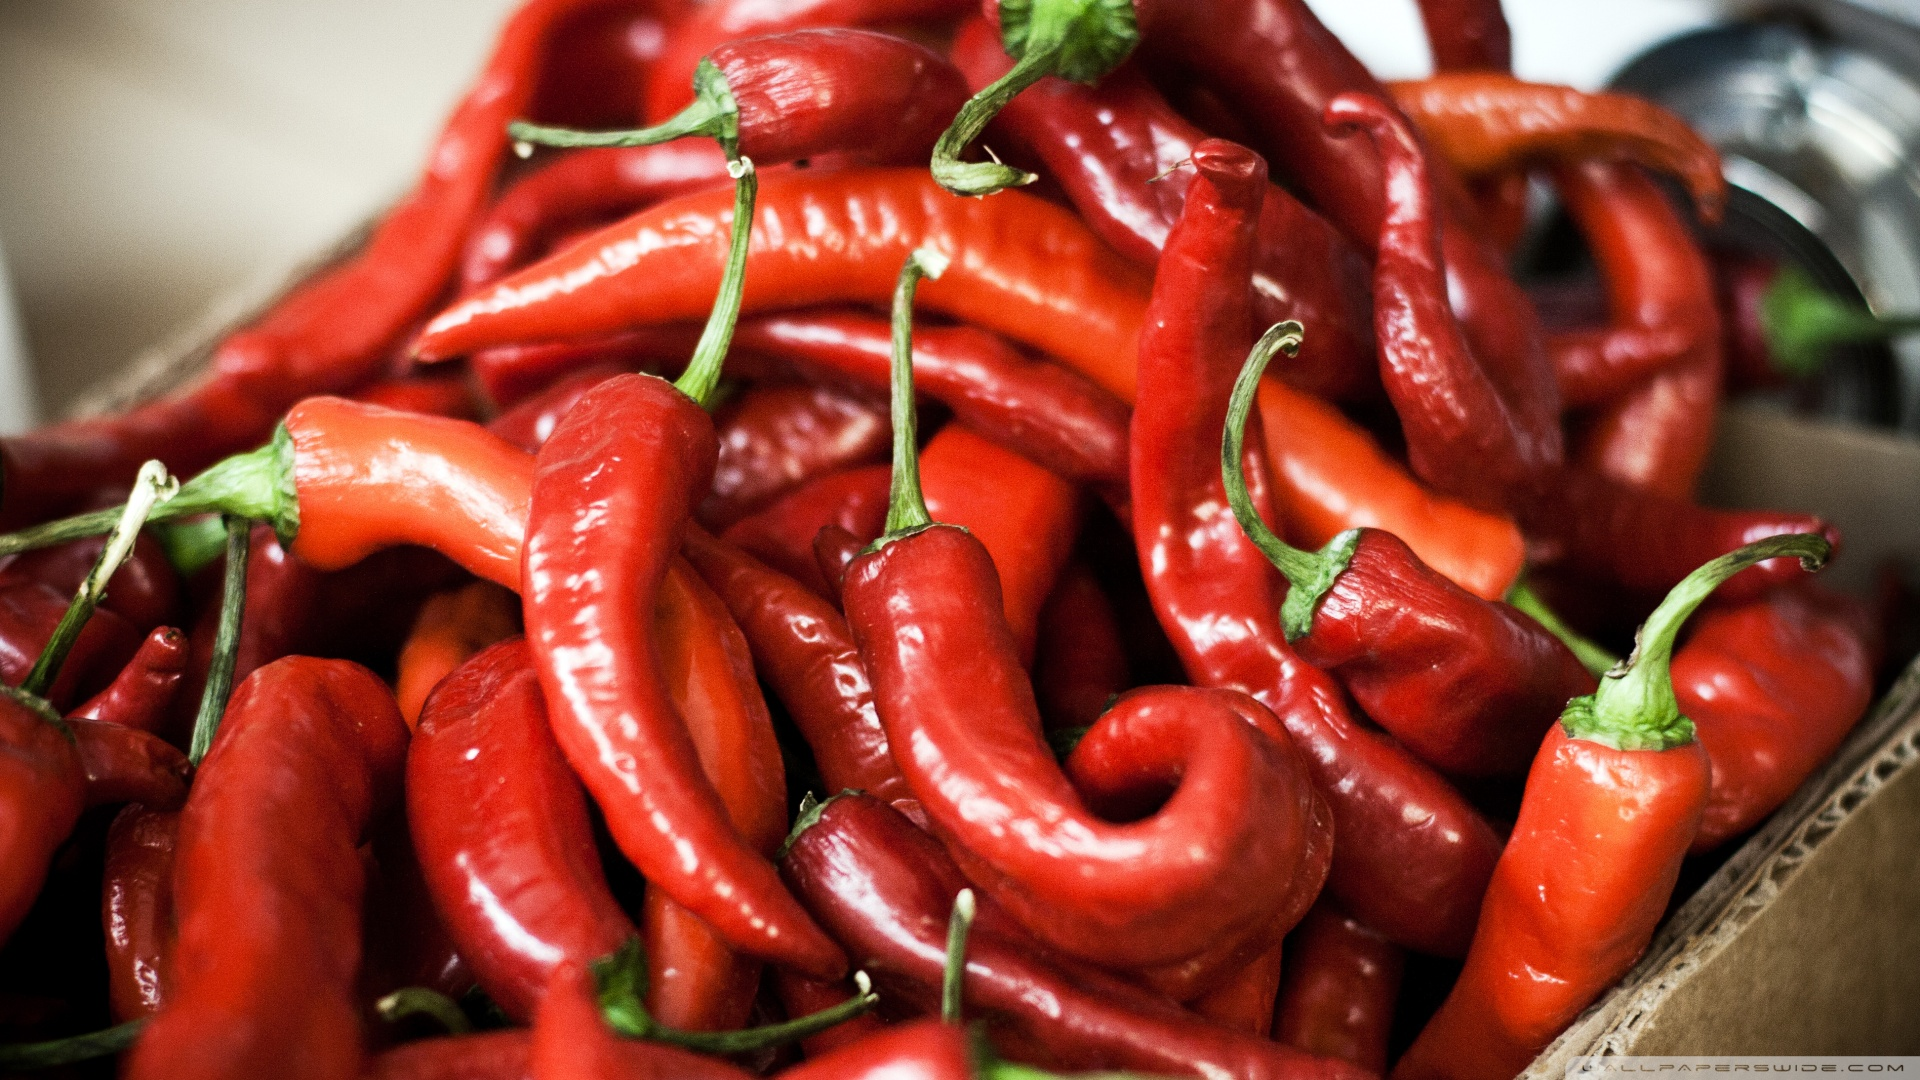 Hot Peppers - Increases your metabolism and heart rate, stimulating endorphins and blood flow. (WARNING: Don't handle pepper and private parts!)